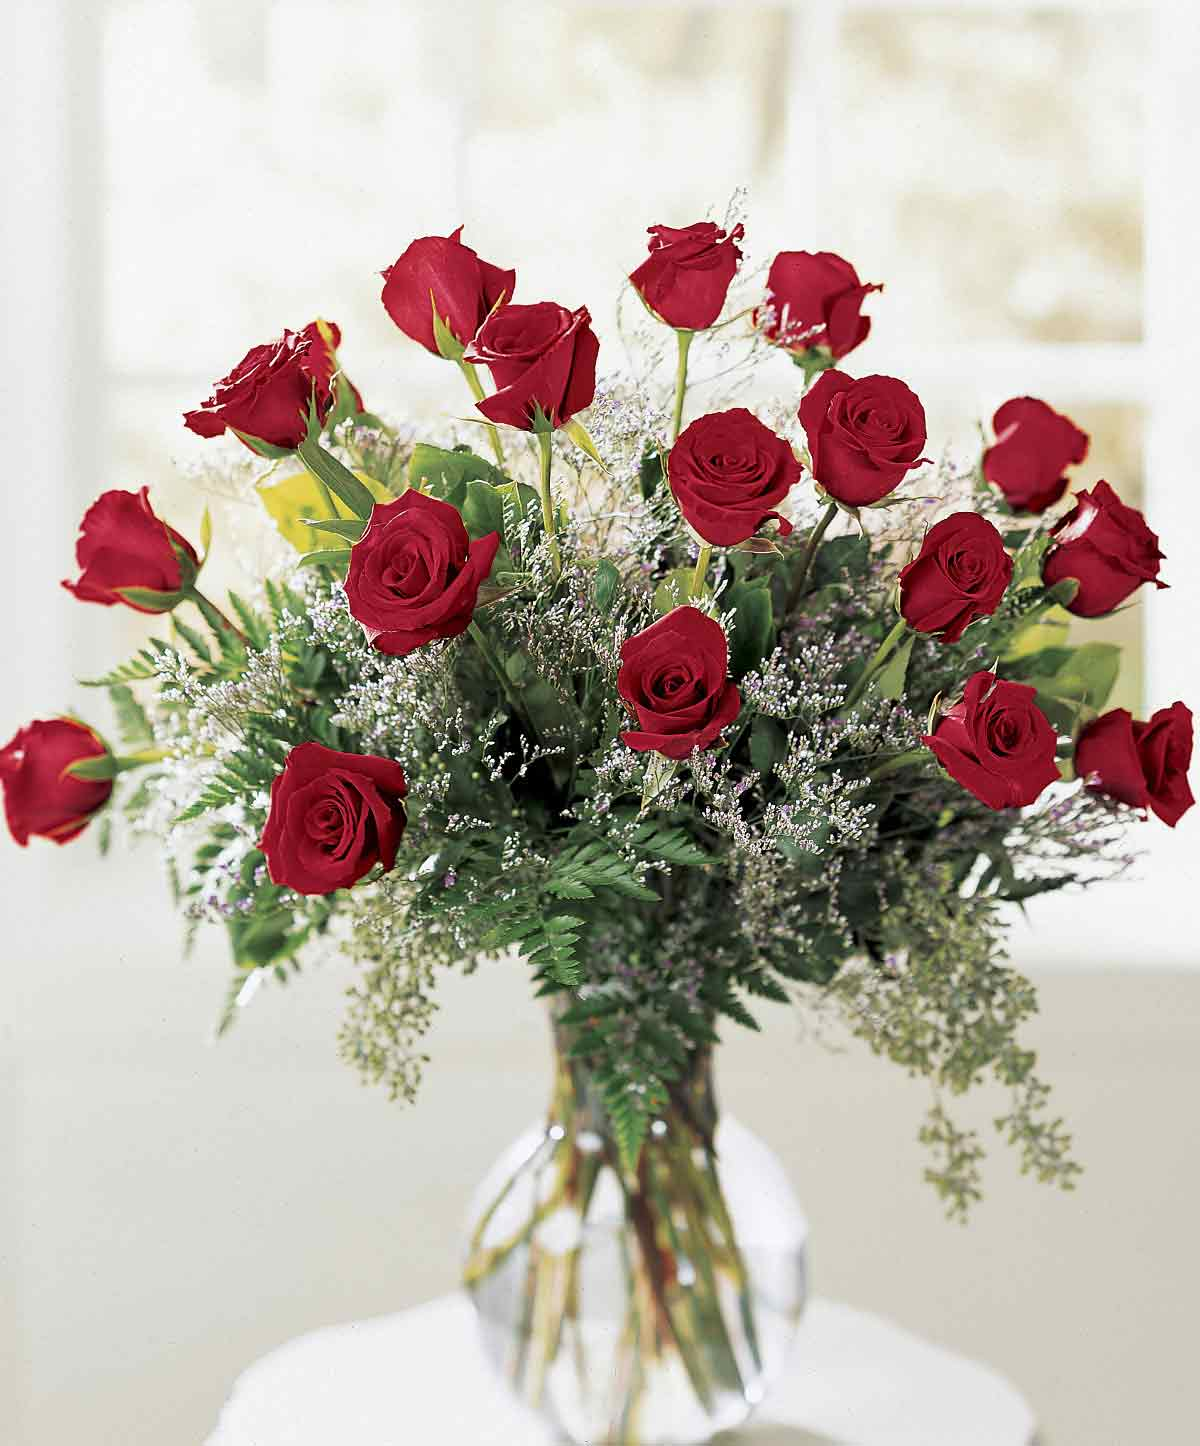 Cool Wallpapers Blog Valentines Day Roses Cool And Beautiful Flowers